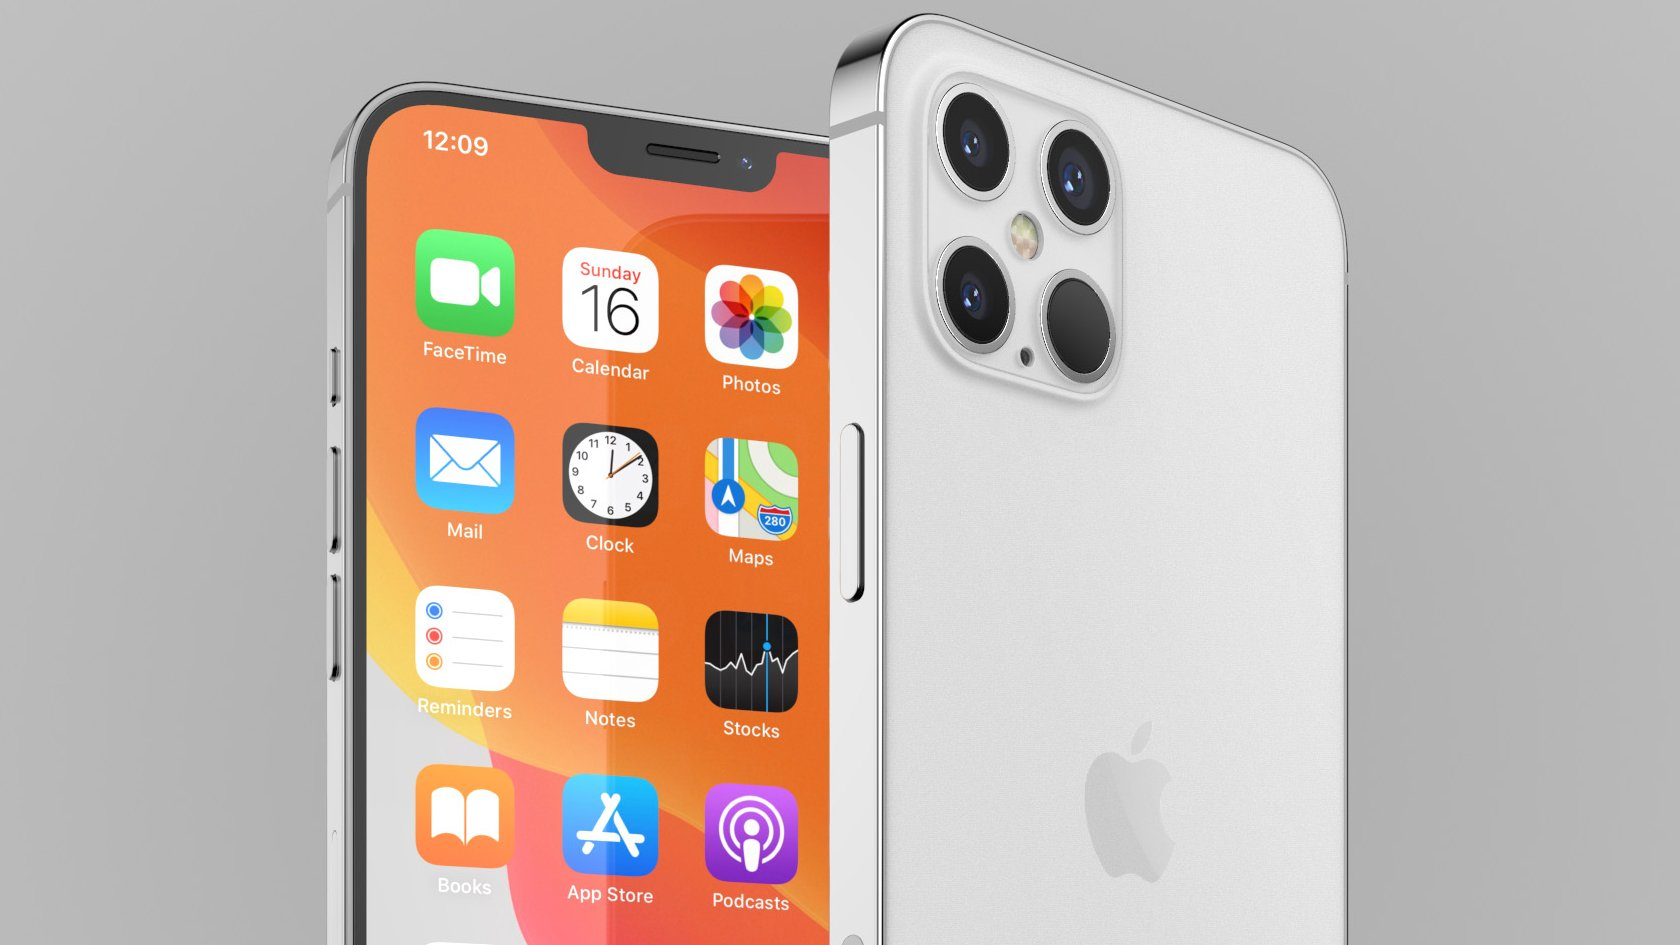 Apple may only ship 15-20 million iPhone 12 series phones in 2020